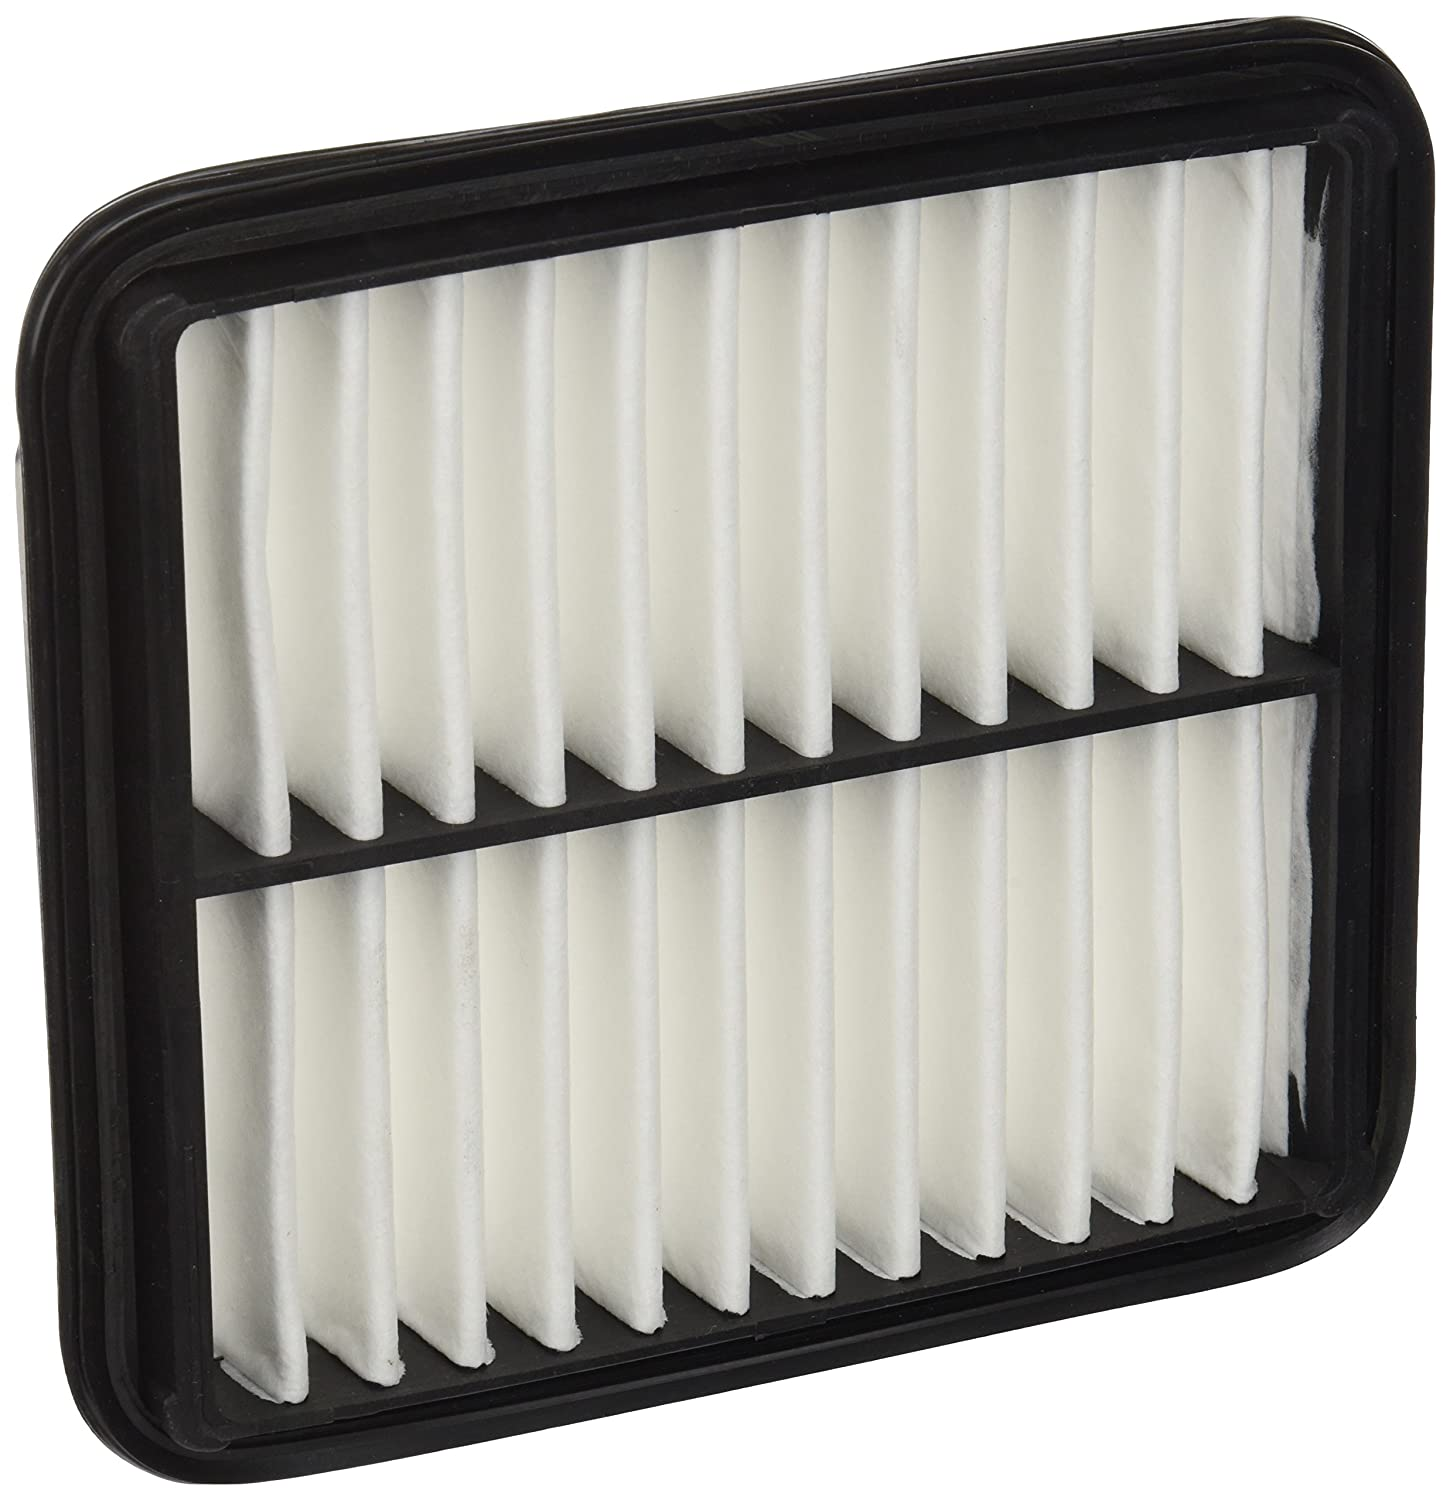 IPS PART j|ifa-3268/ Air Filter